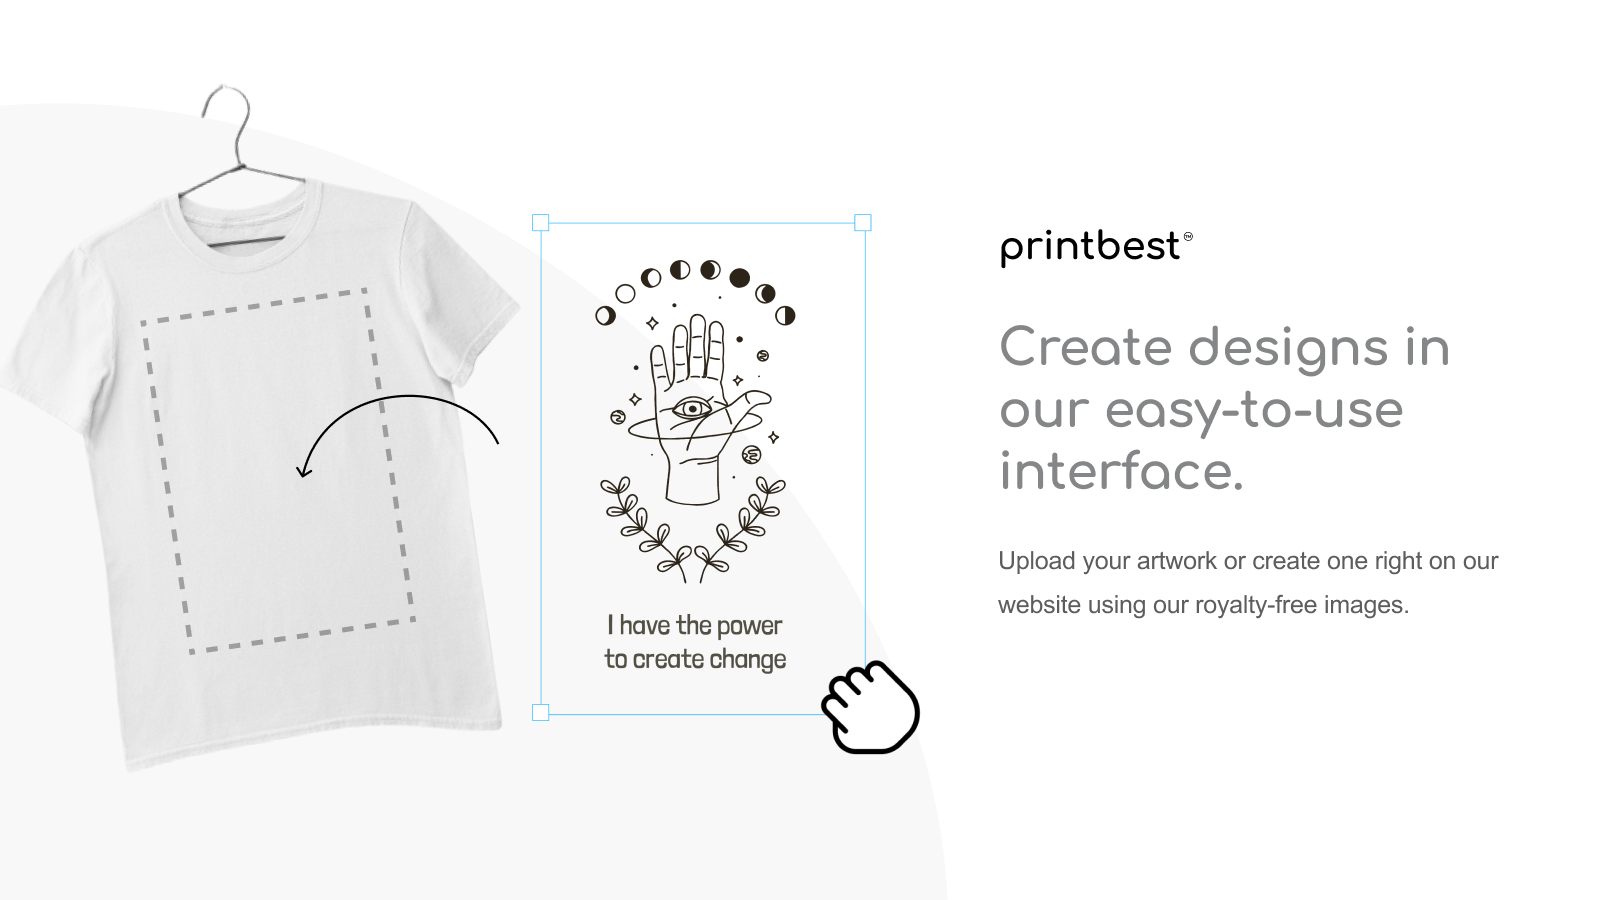 Create designs in our easy-to-use interface